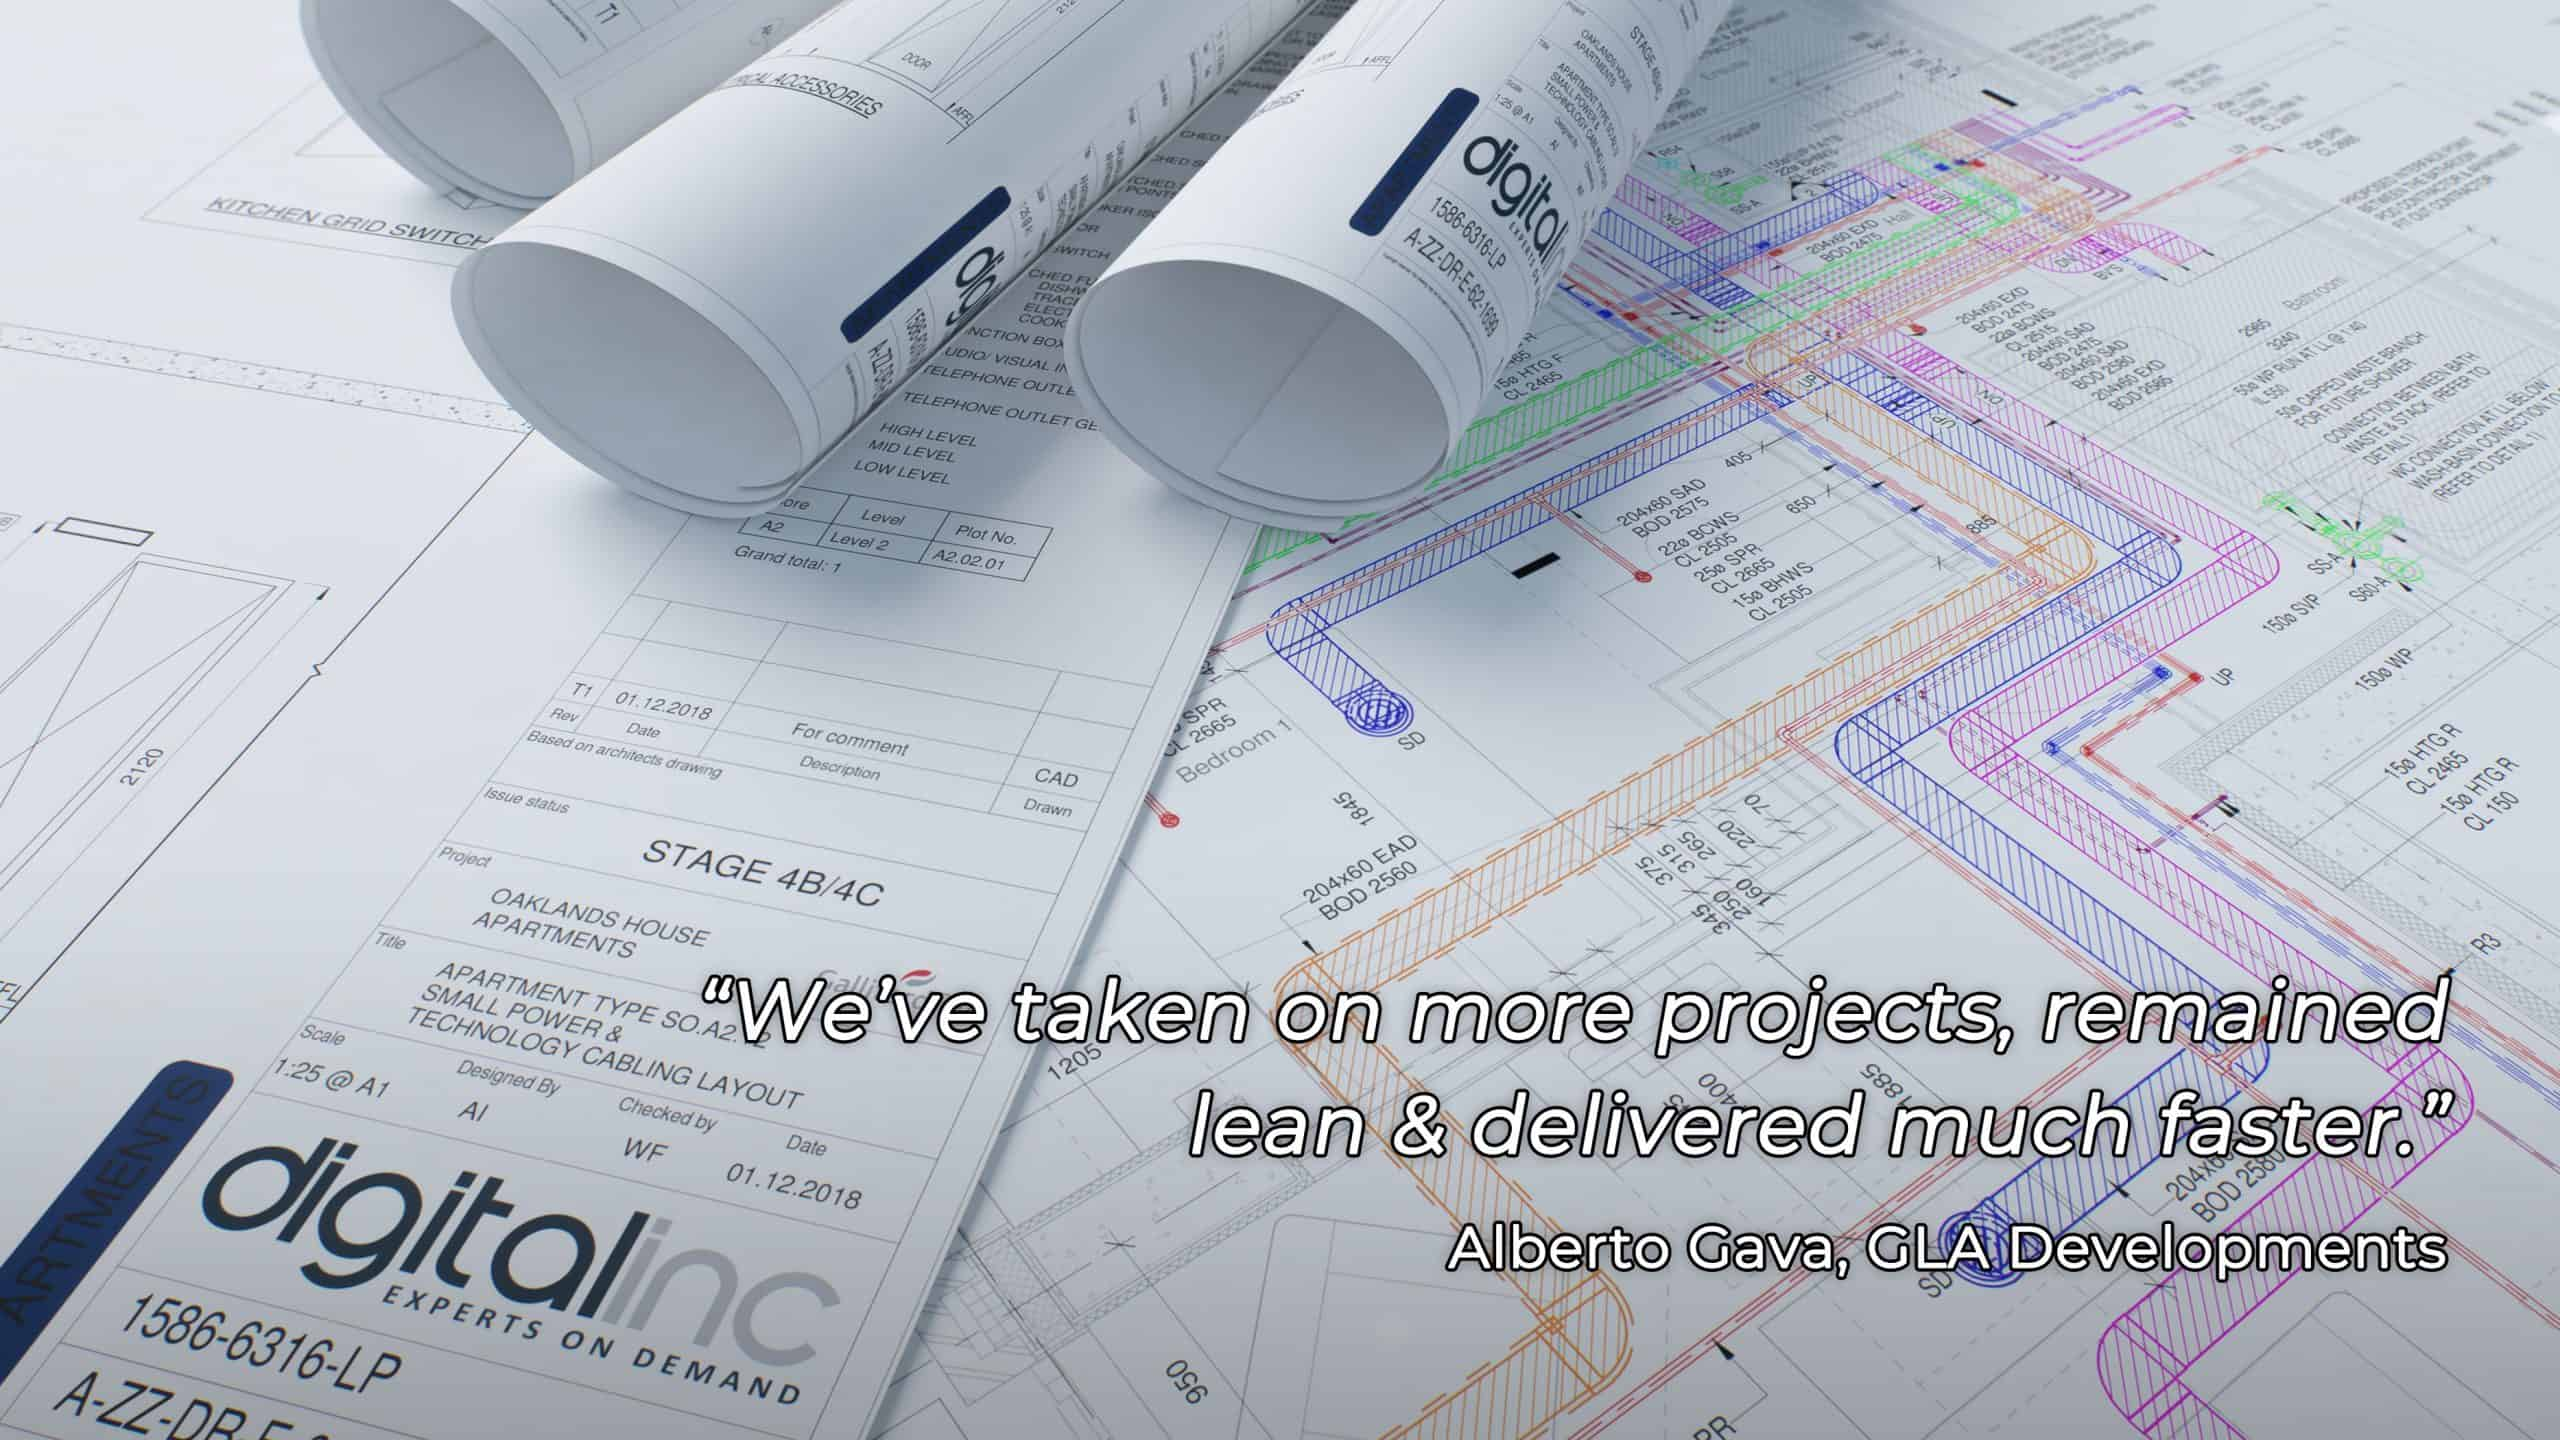 """Building plans with testimonial: """"We've taken on more projects, remained lean & delivered much faster."""" Alberto Gava, GLA Developments"""